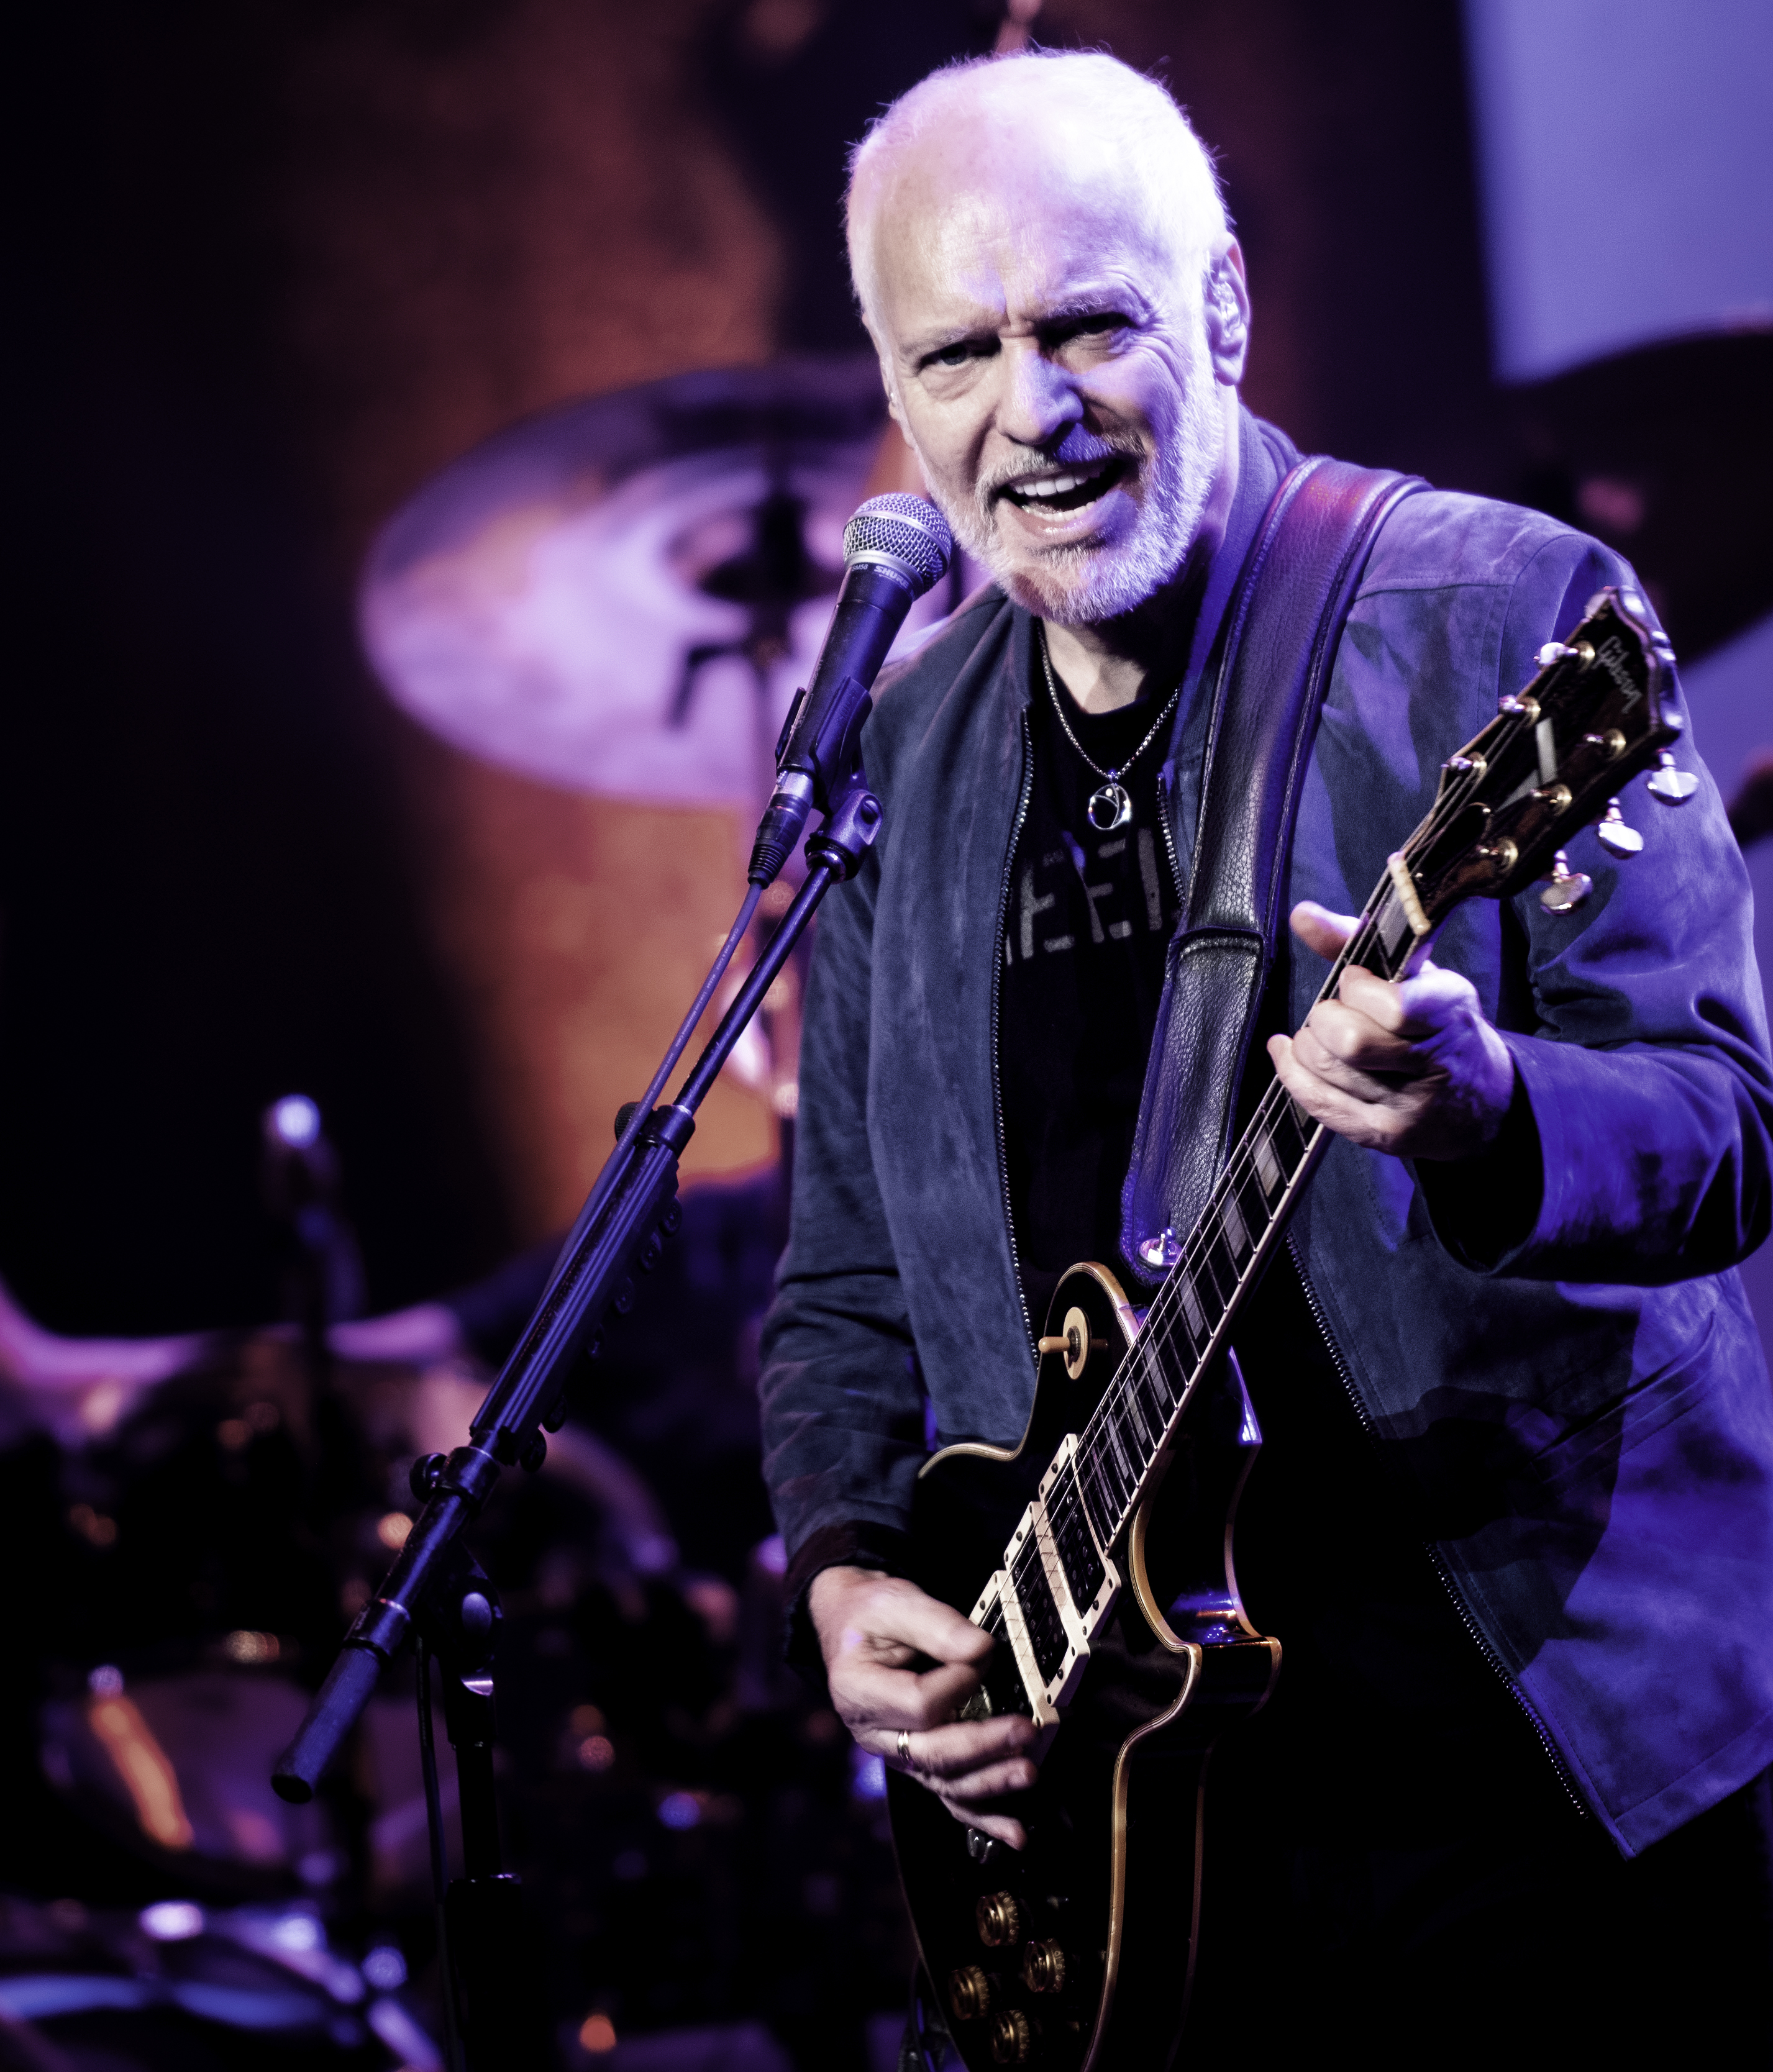 Peter Frampton At The Montreal International Jazz Festival 2019